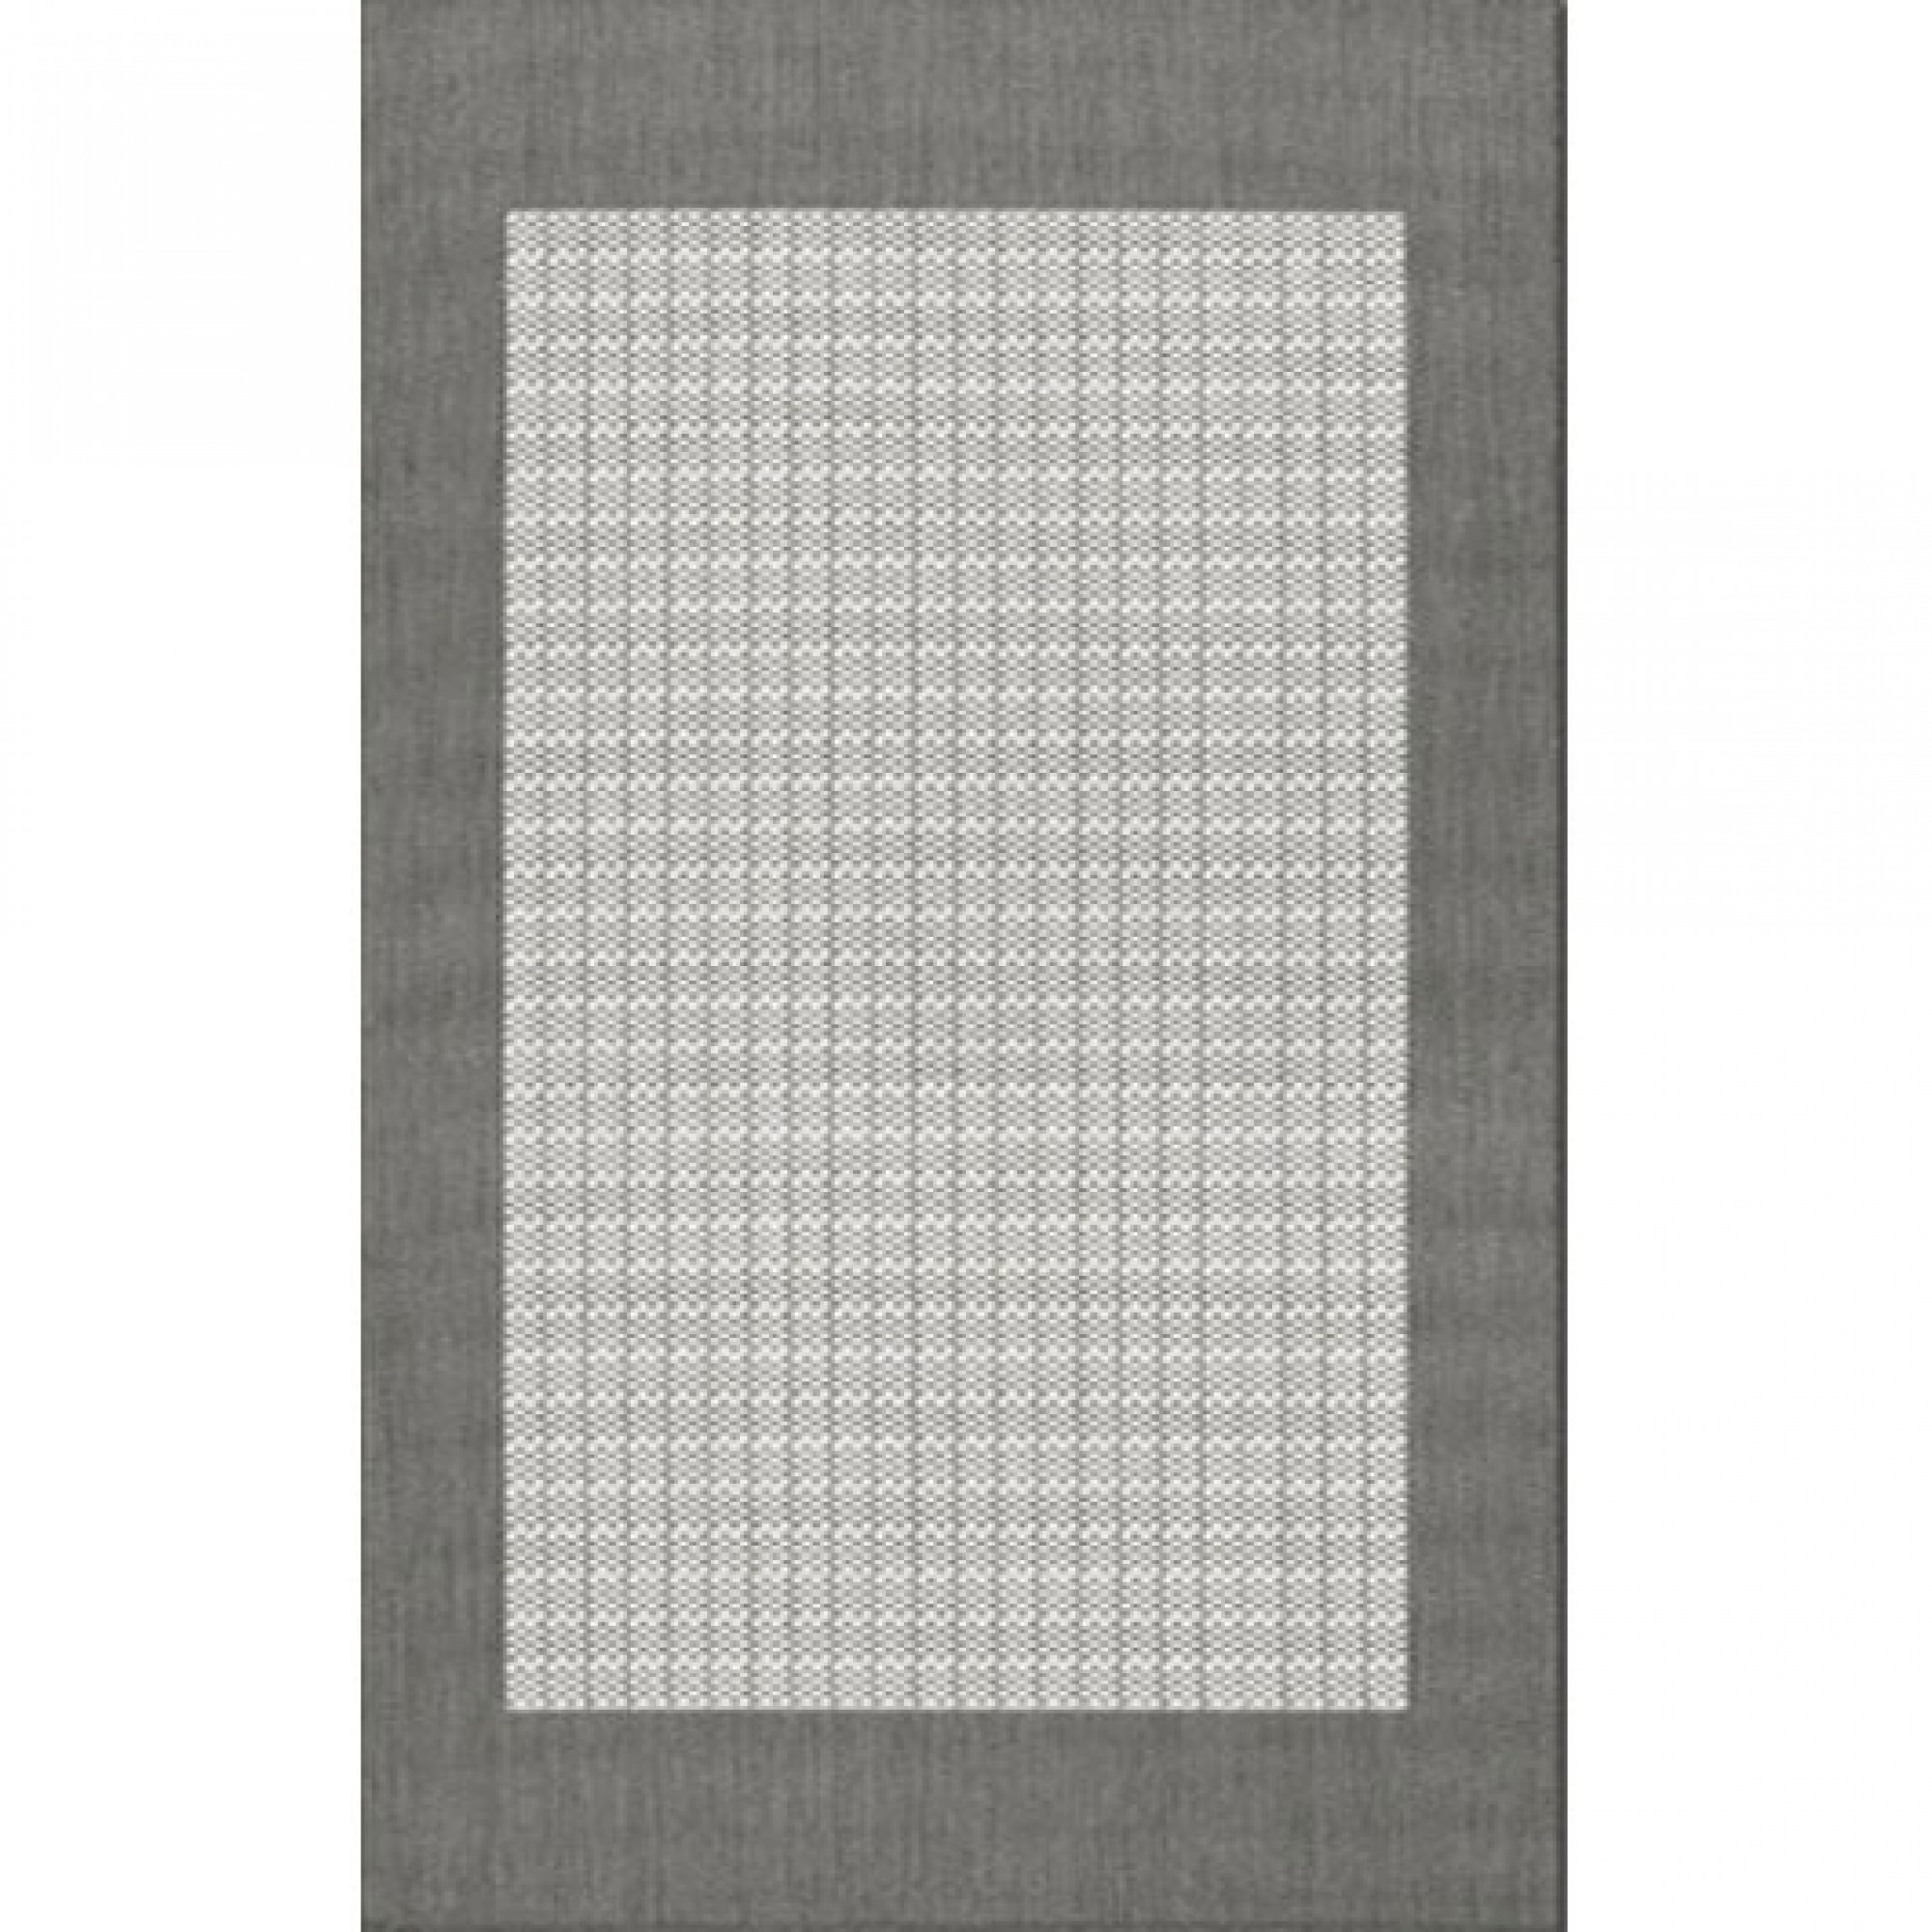 Checked Black Grey Rug: Shop Recife Checkered Field Gray/White Outdoor Rug (1 Ft 8